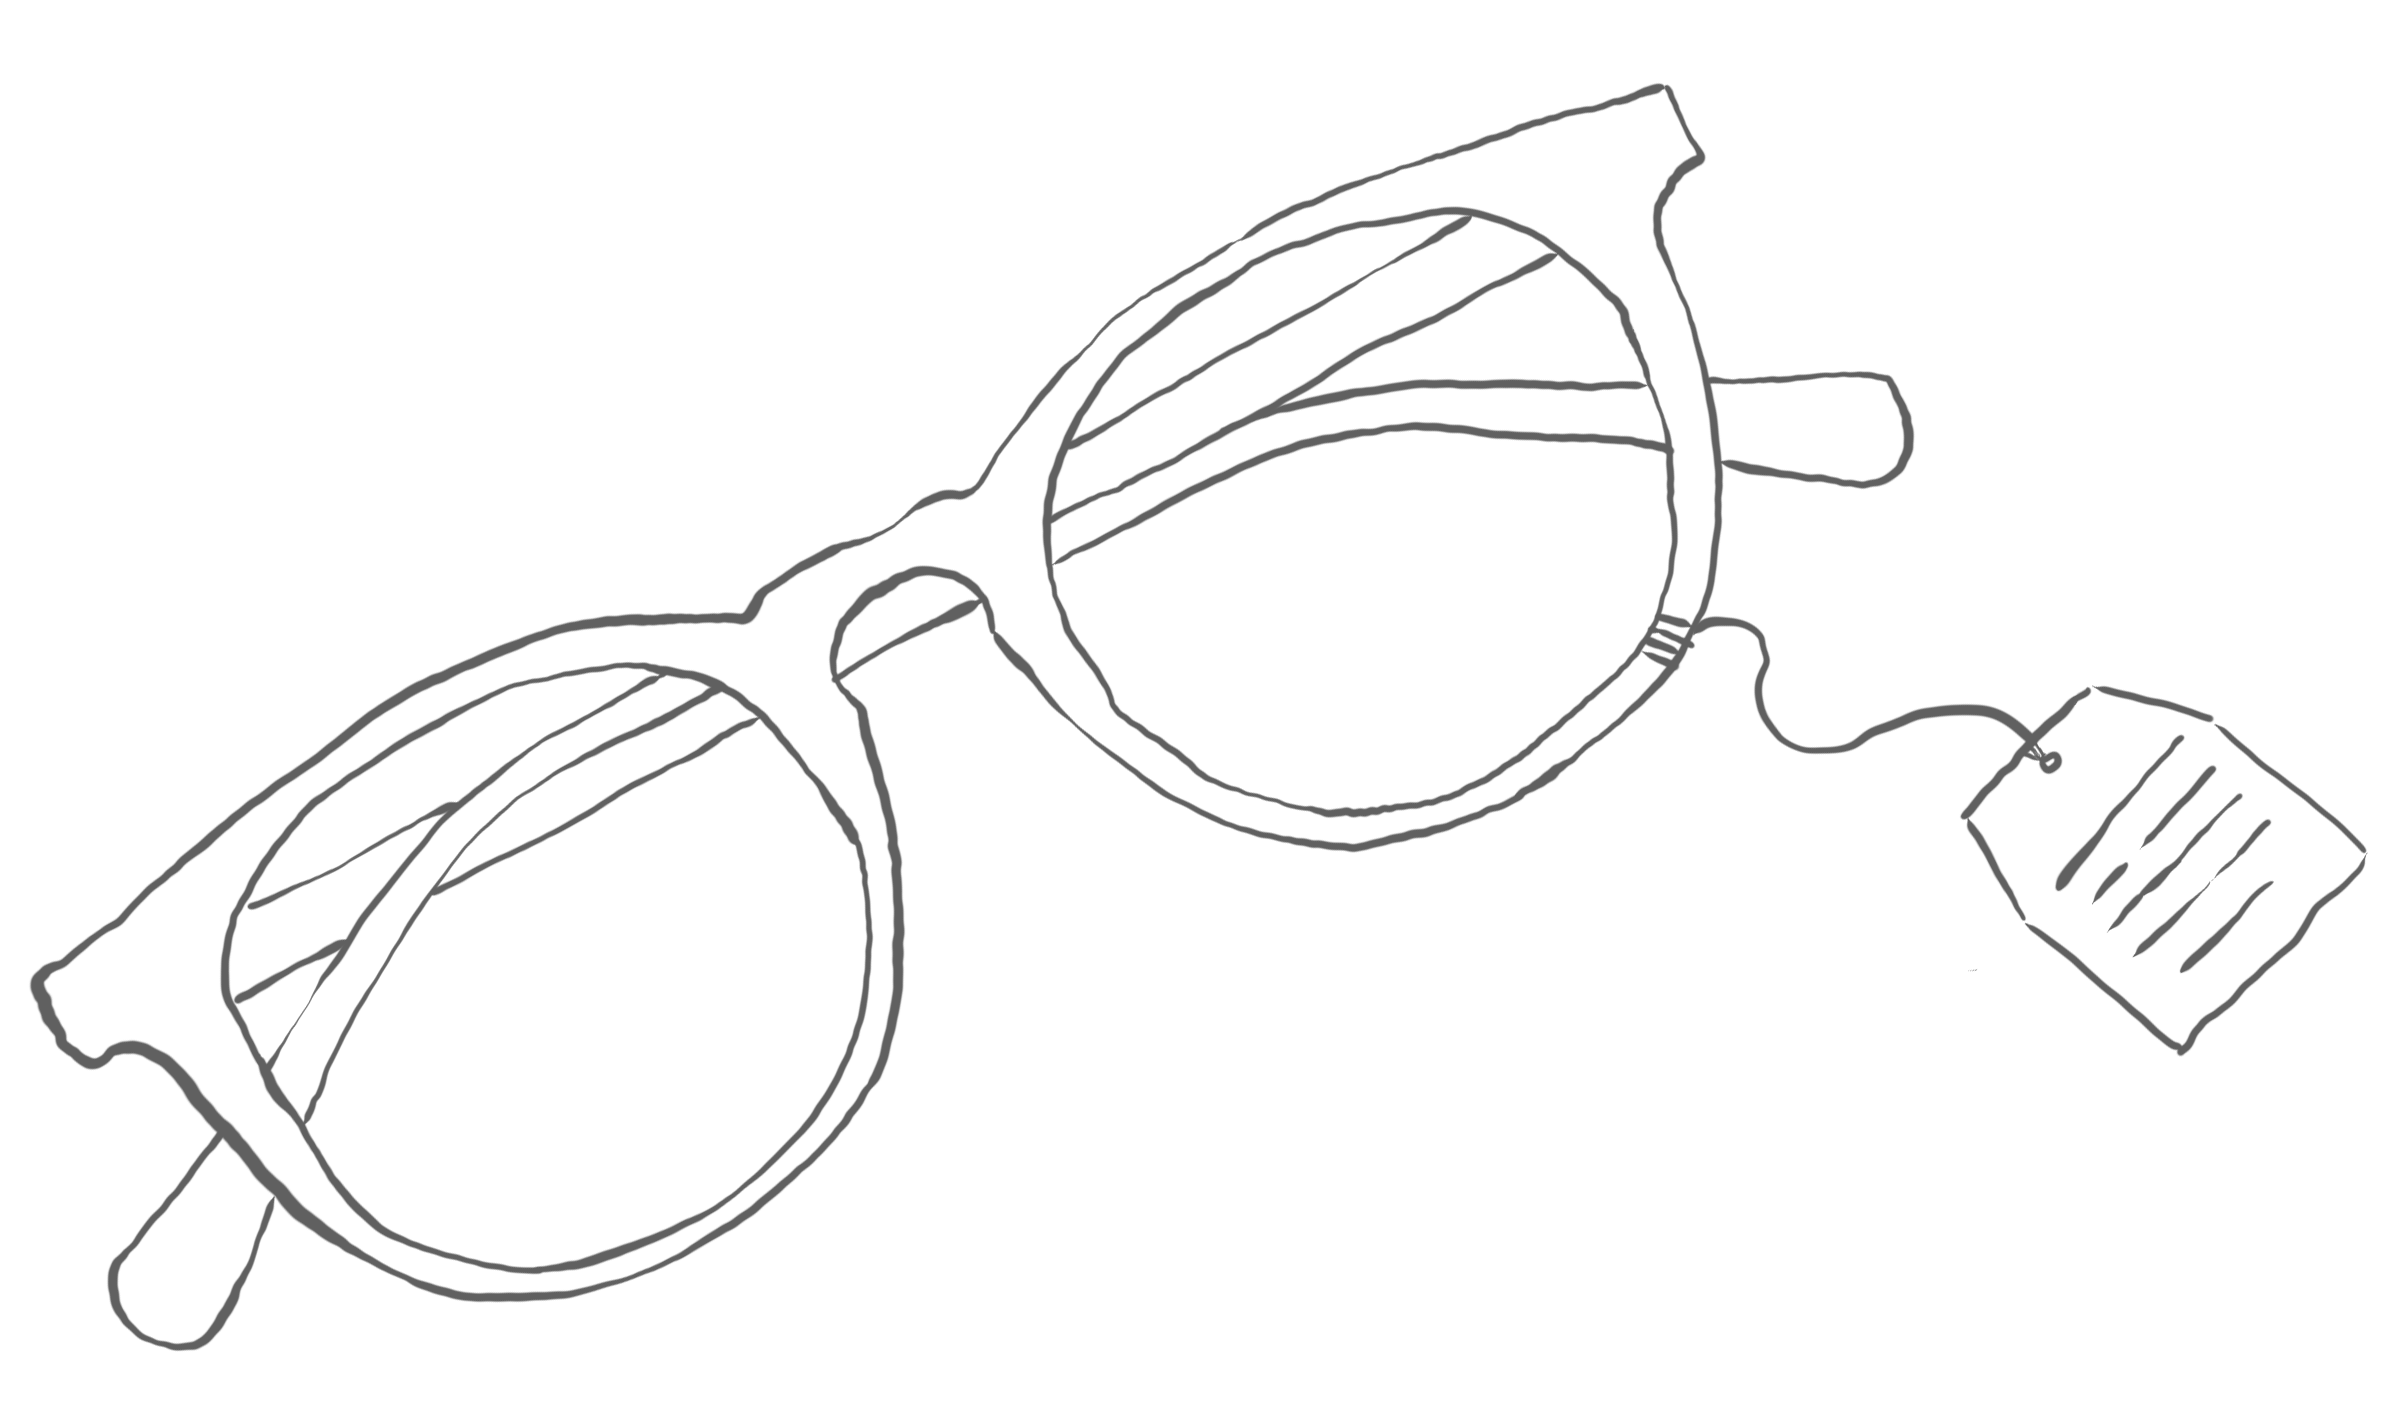 Sunglasses Drawing At Getdrawings